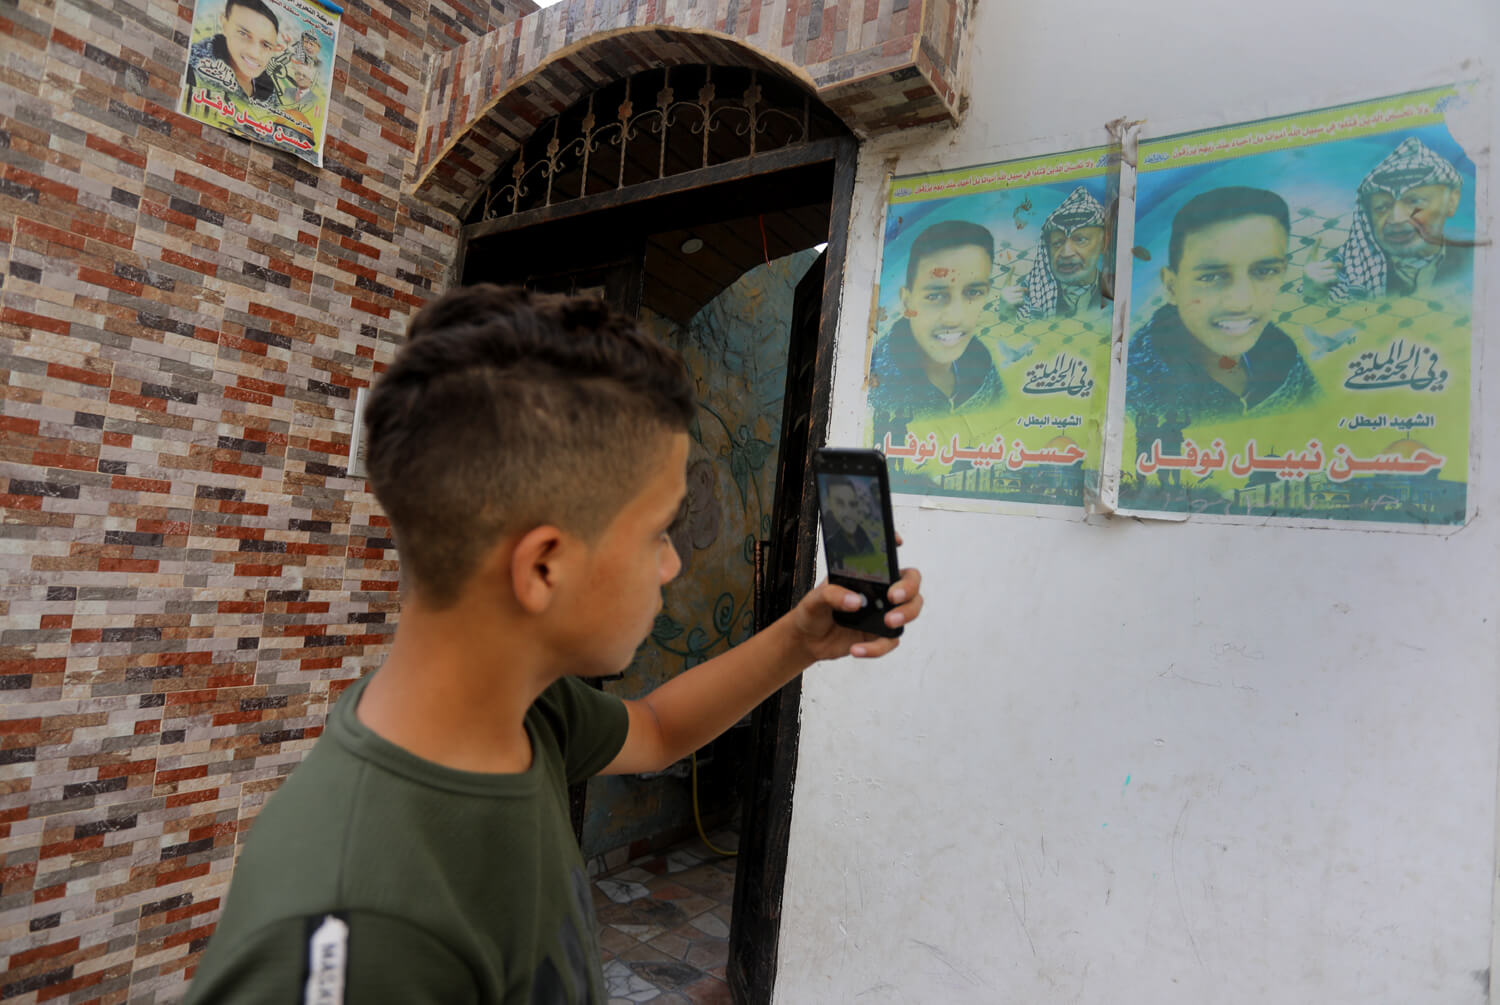 Jamil taking a photo of a poster commemorating Hasan Nawfal.